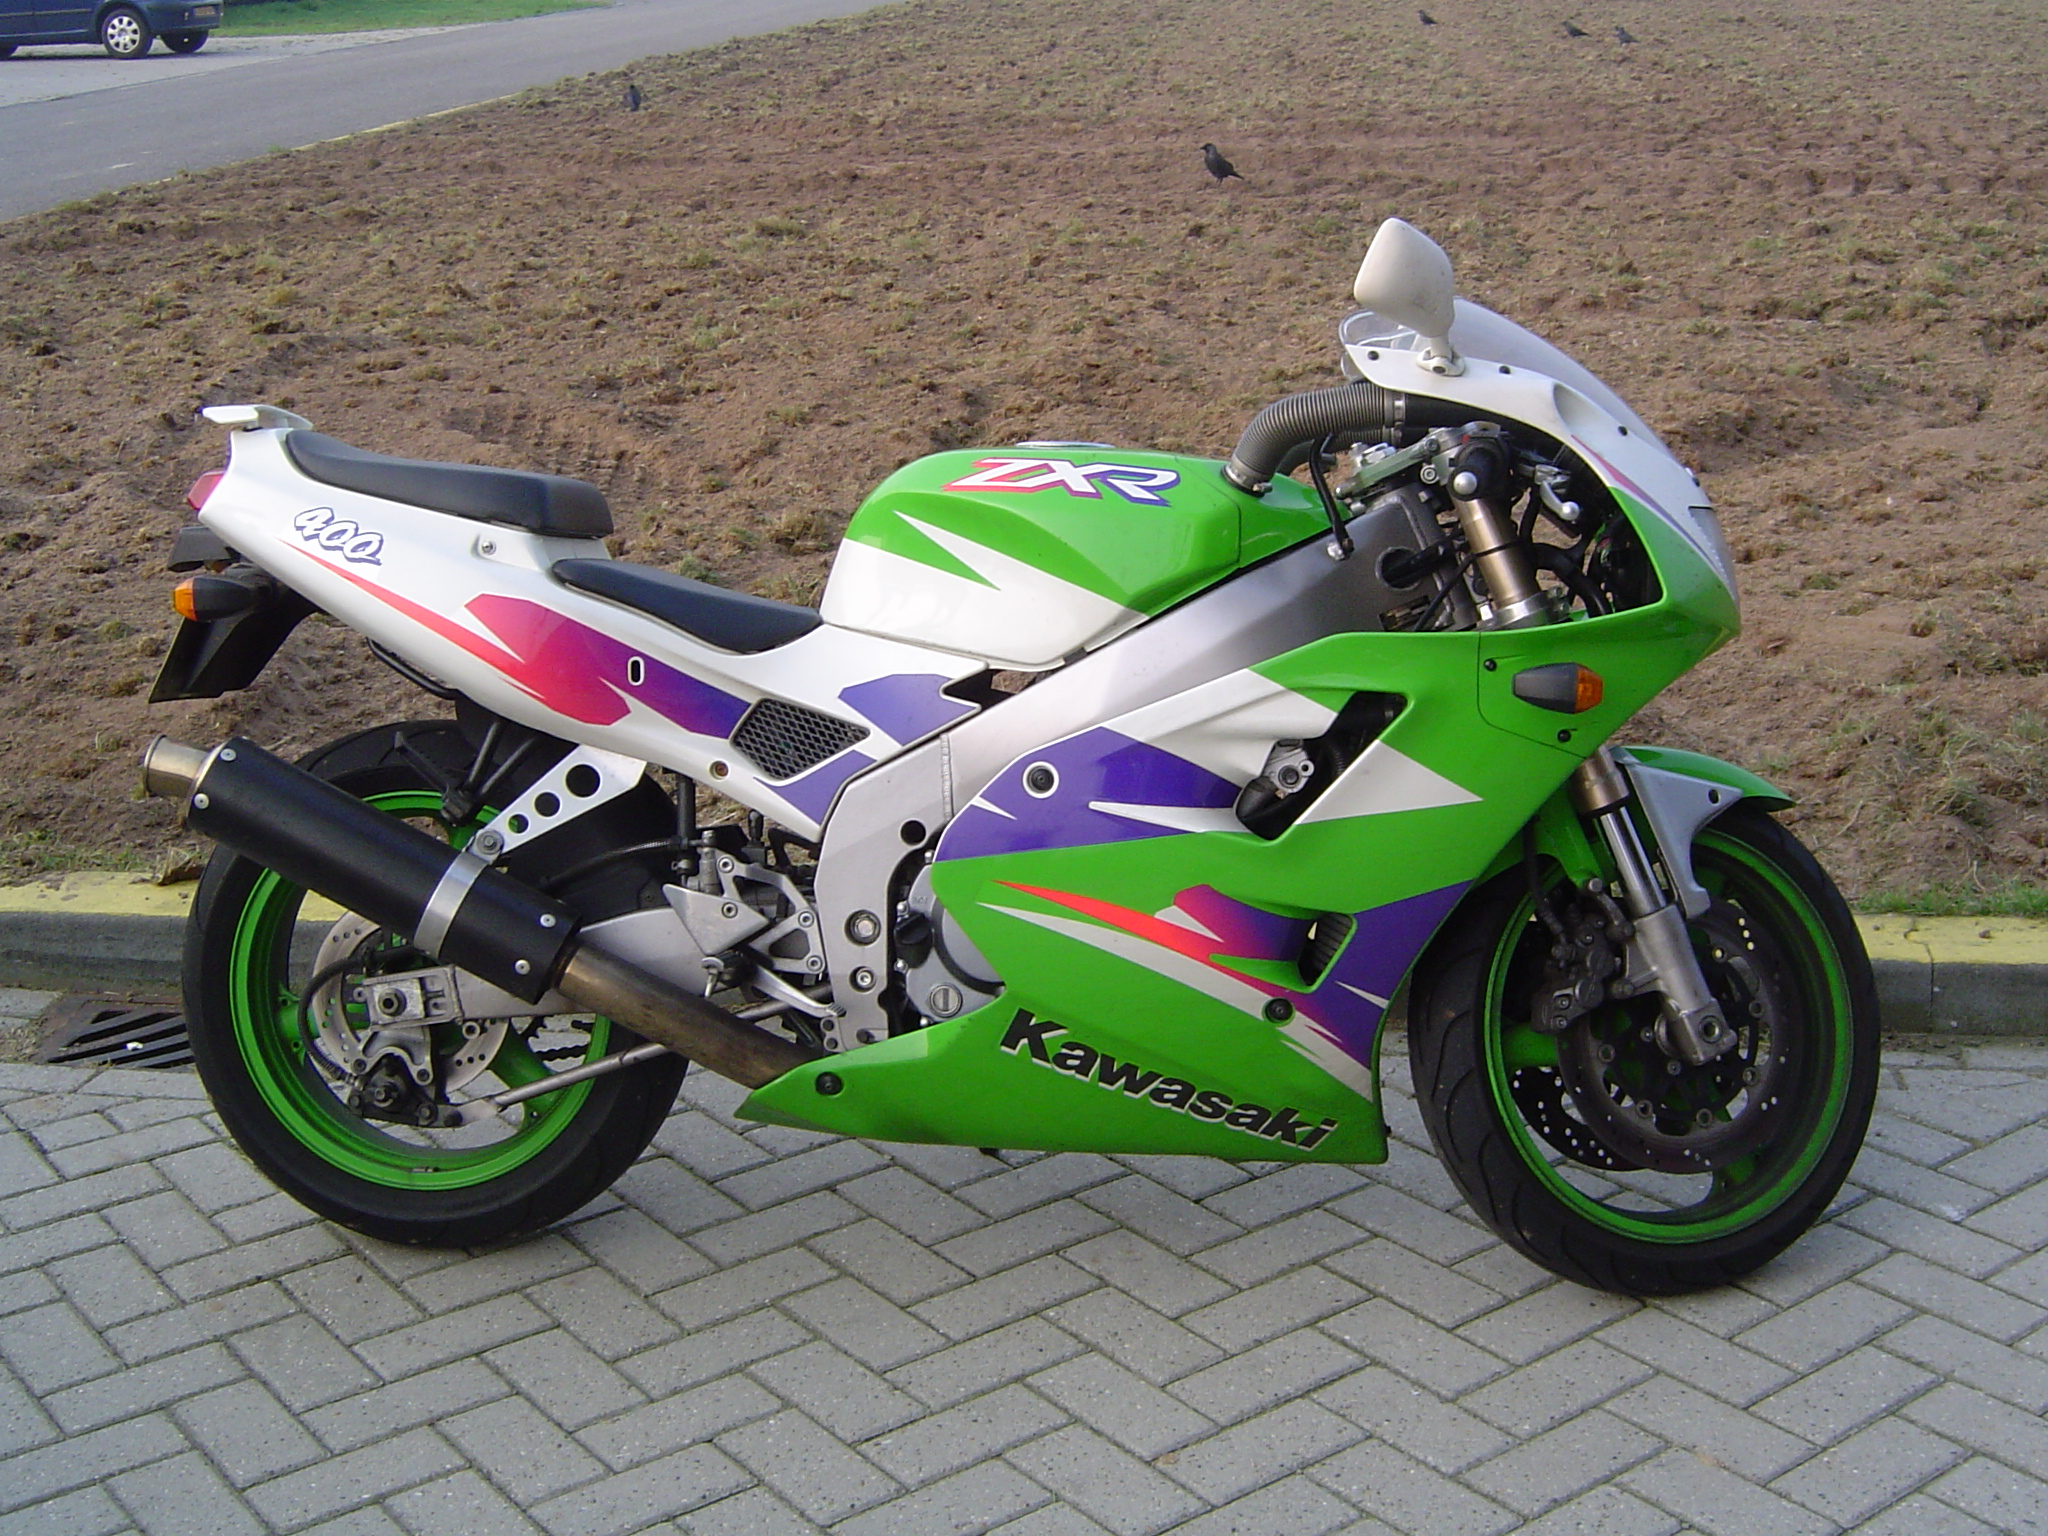 Kawasaki Zx R No Fuel In Cylinders Site Www Zxforums Com